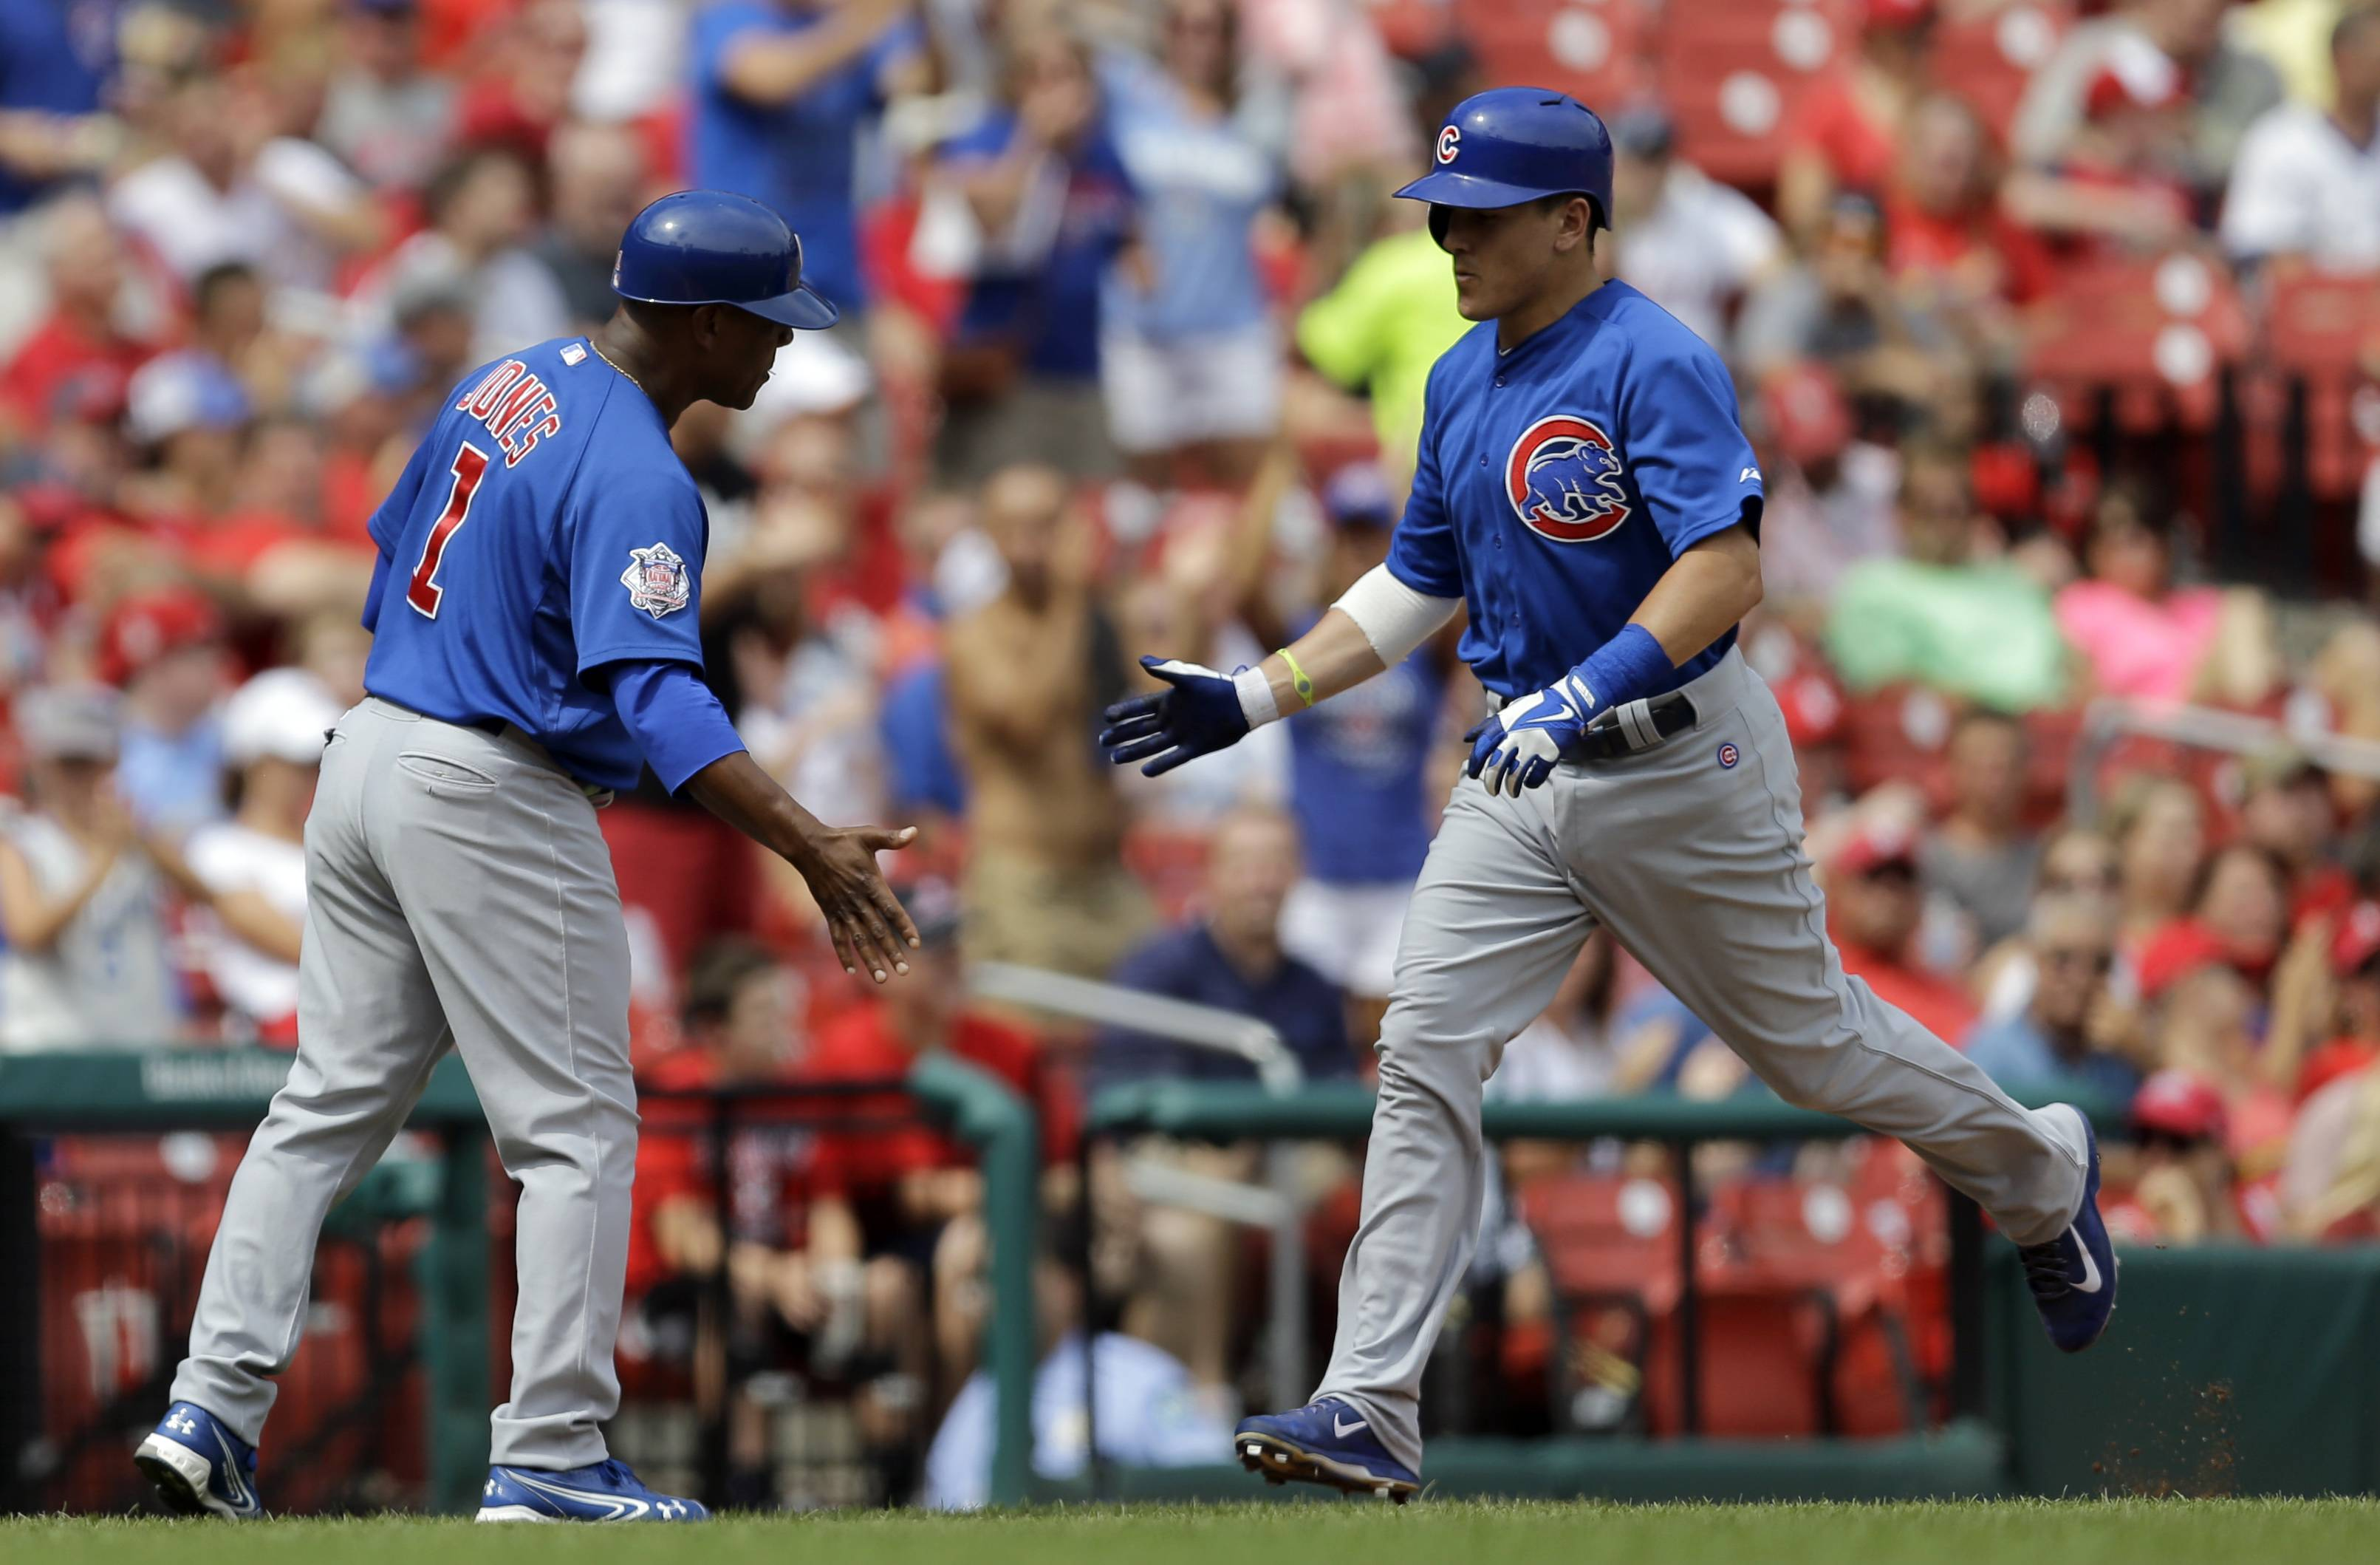 Chicago Cubs' Logan Watkins, right, is congratulated by third base coach Gary Jones while rounding the bases after hitting a solo home run during the first game of a doubleheader against the St. Louis Cardinals Saturday in St. Louis. The Cubs and Cards split the doubleheader.